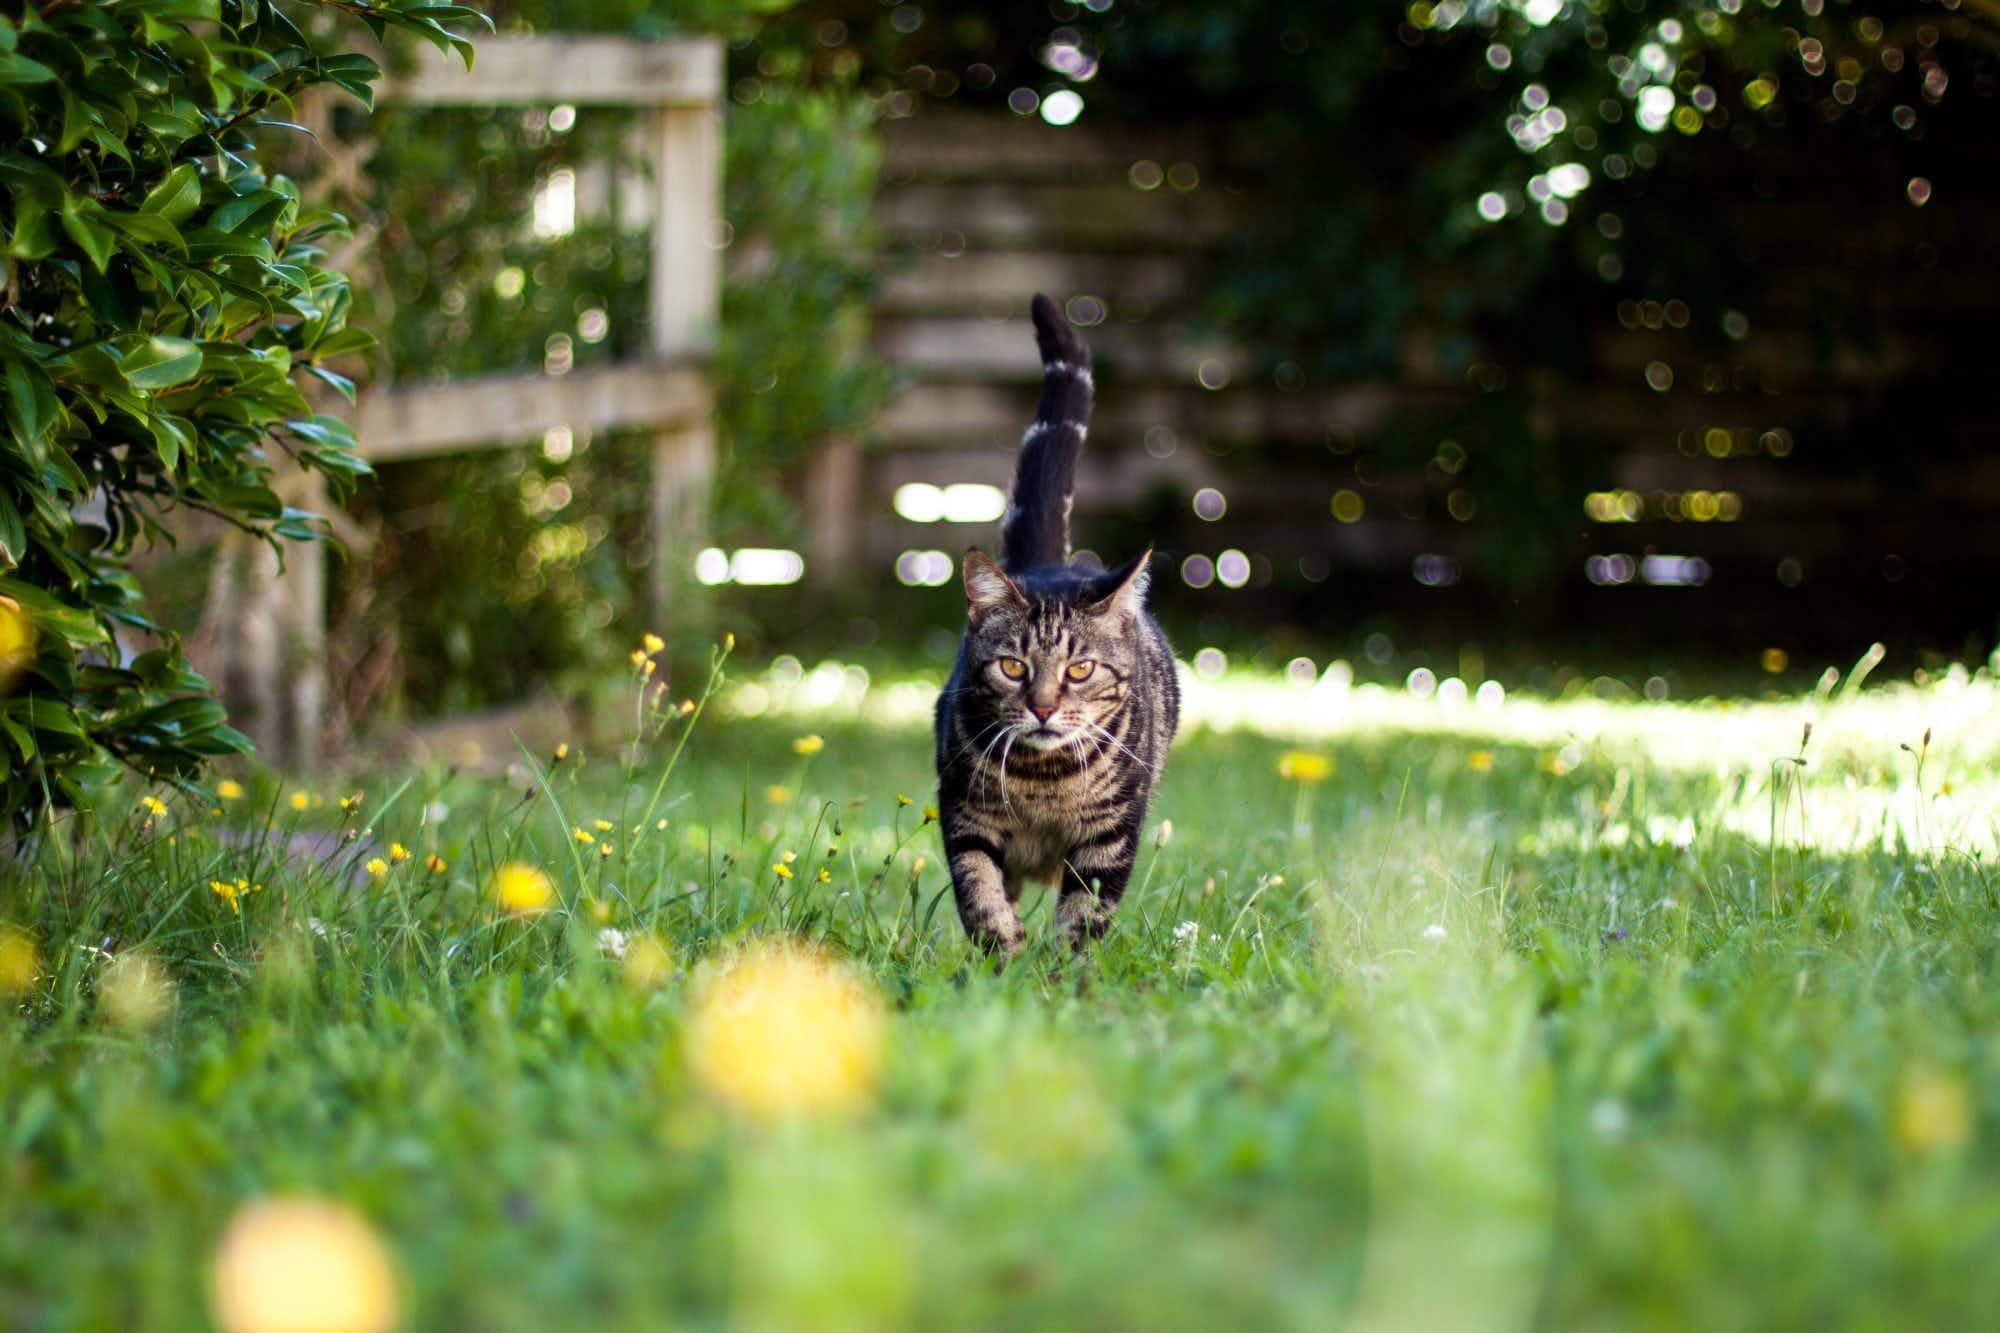 New Zealanders asked to leave their cats at home on holidays